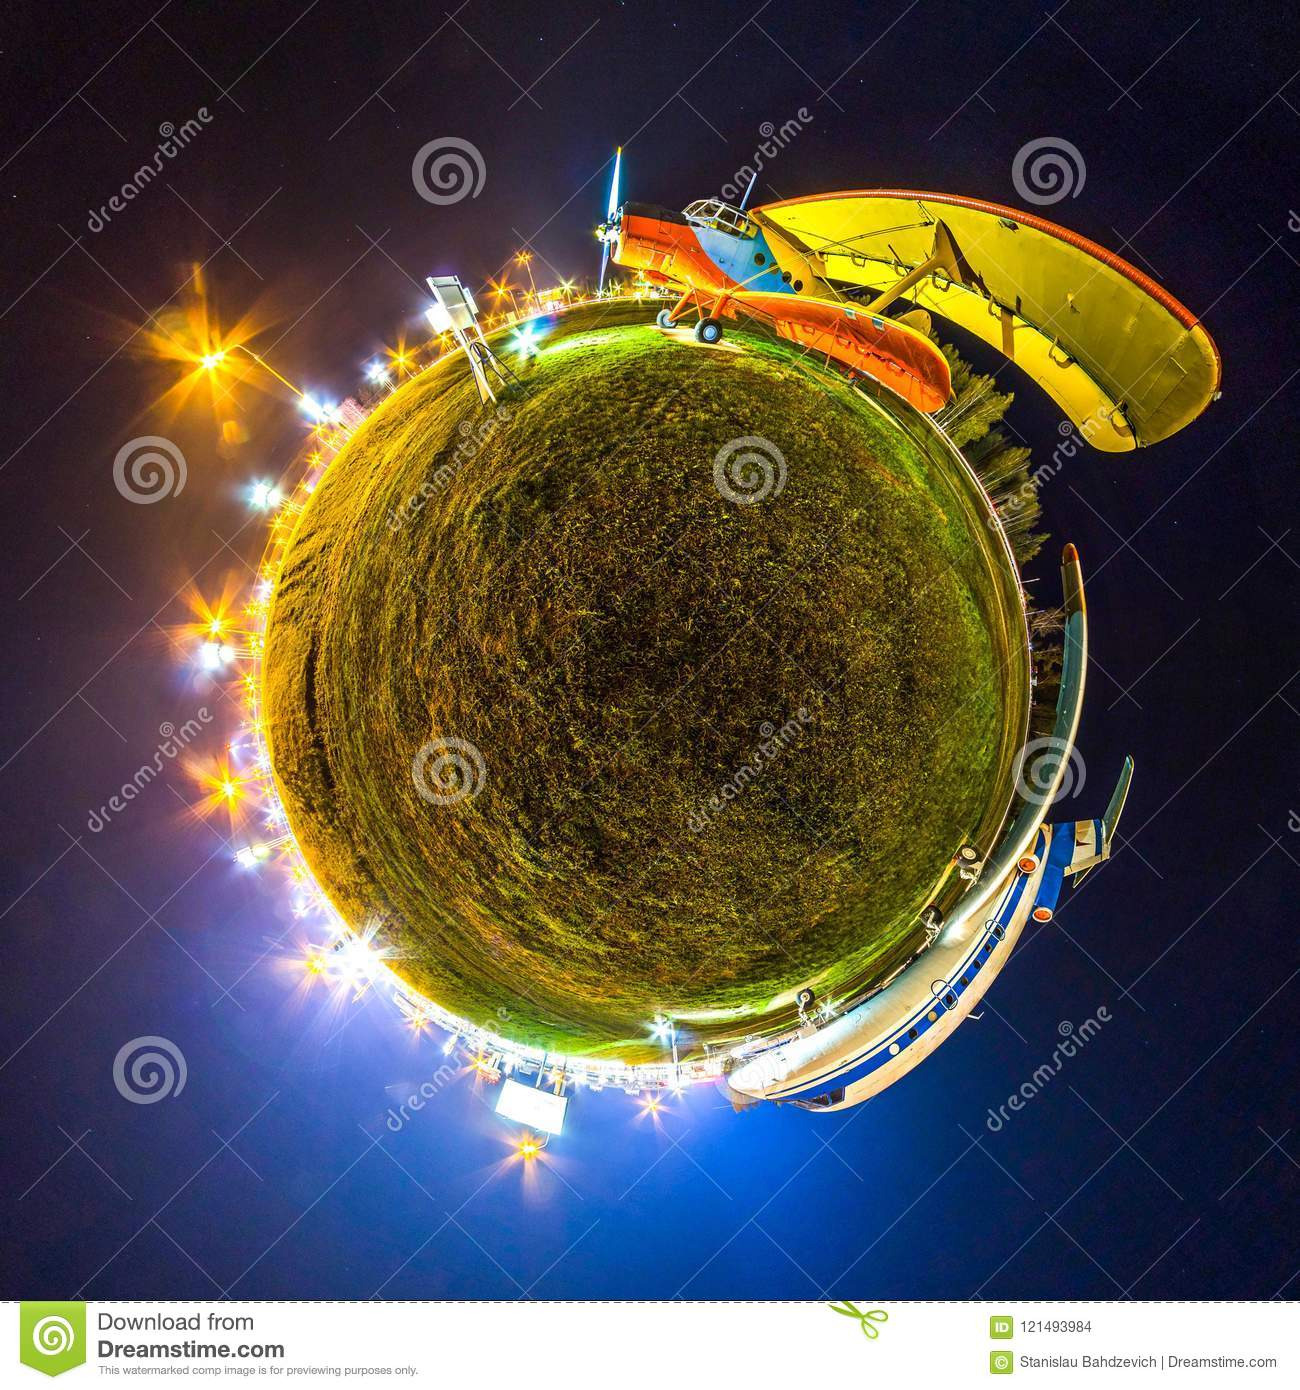 Mini planet Earth. Little planet earth with 360 viewing angel. Globe panorama of world. Planes at night with lights.